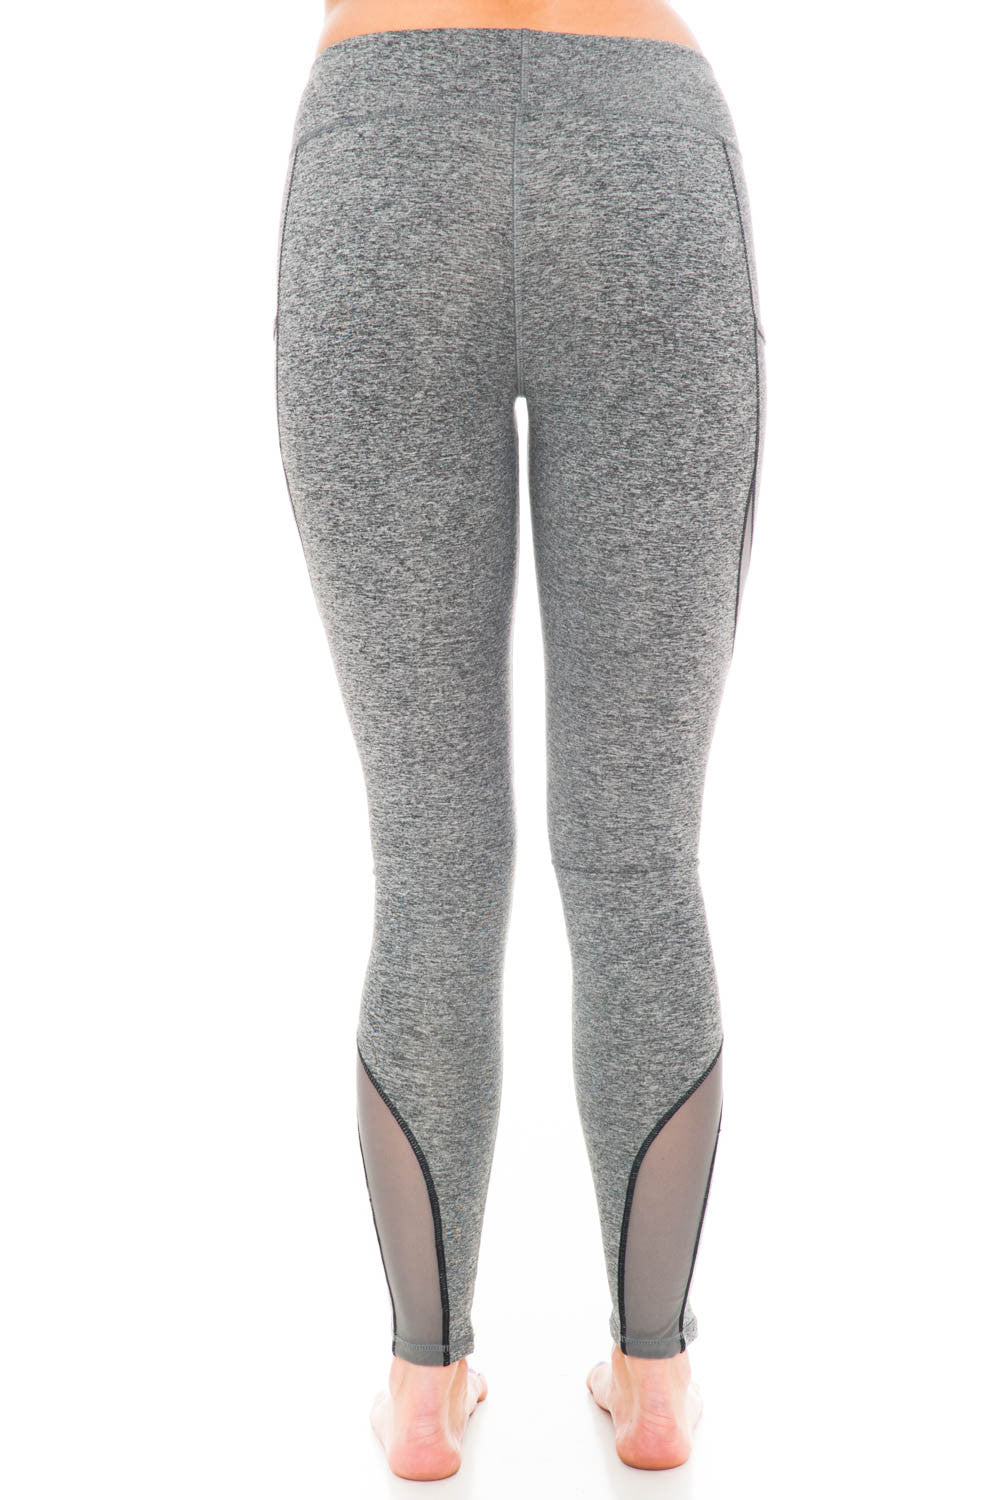 Legging - Mesh Detail Yoga Pant by Motion by Coalition